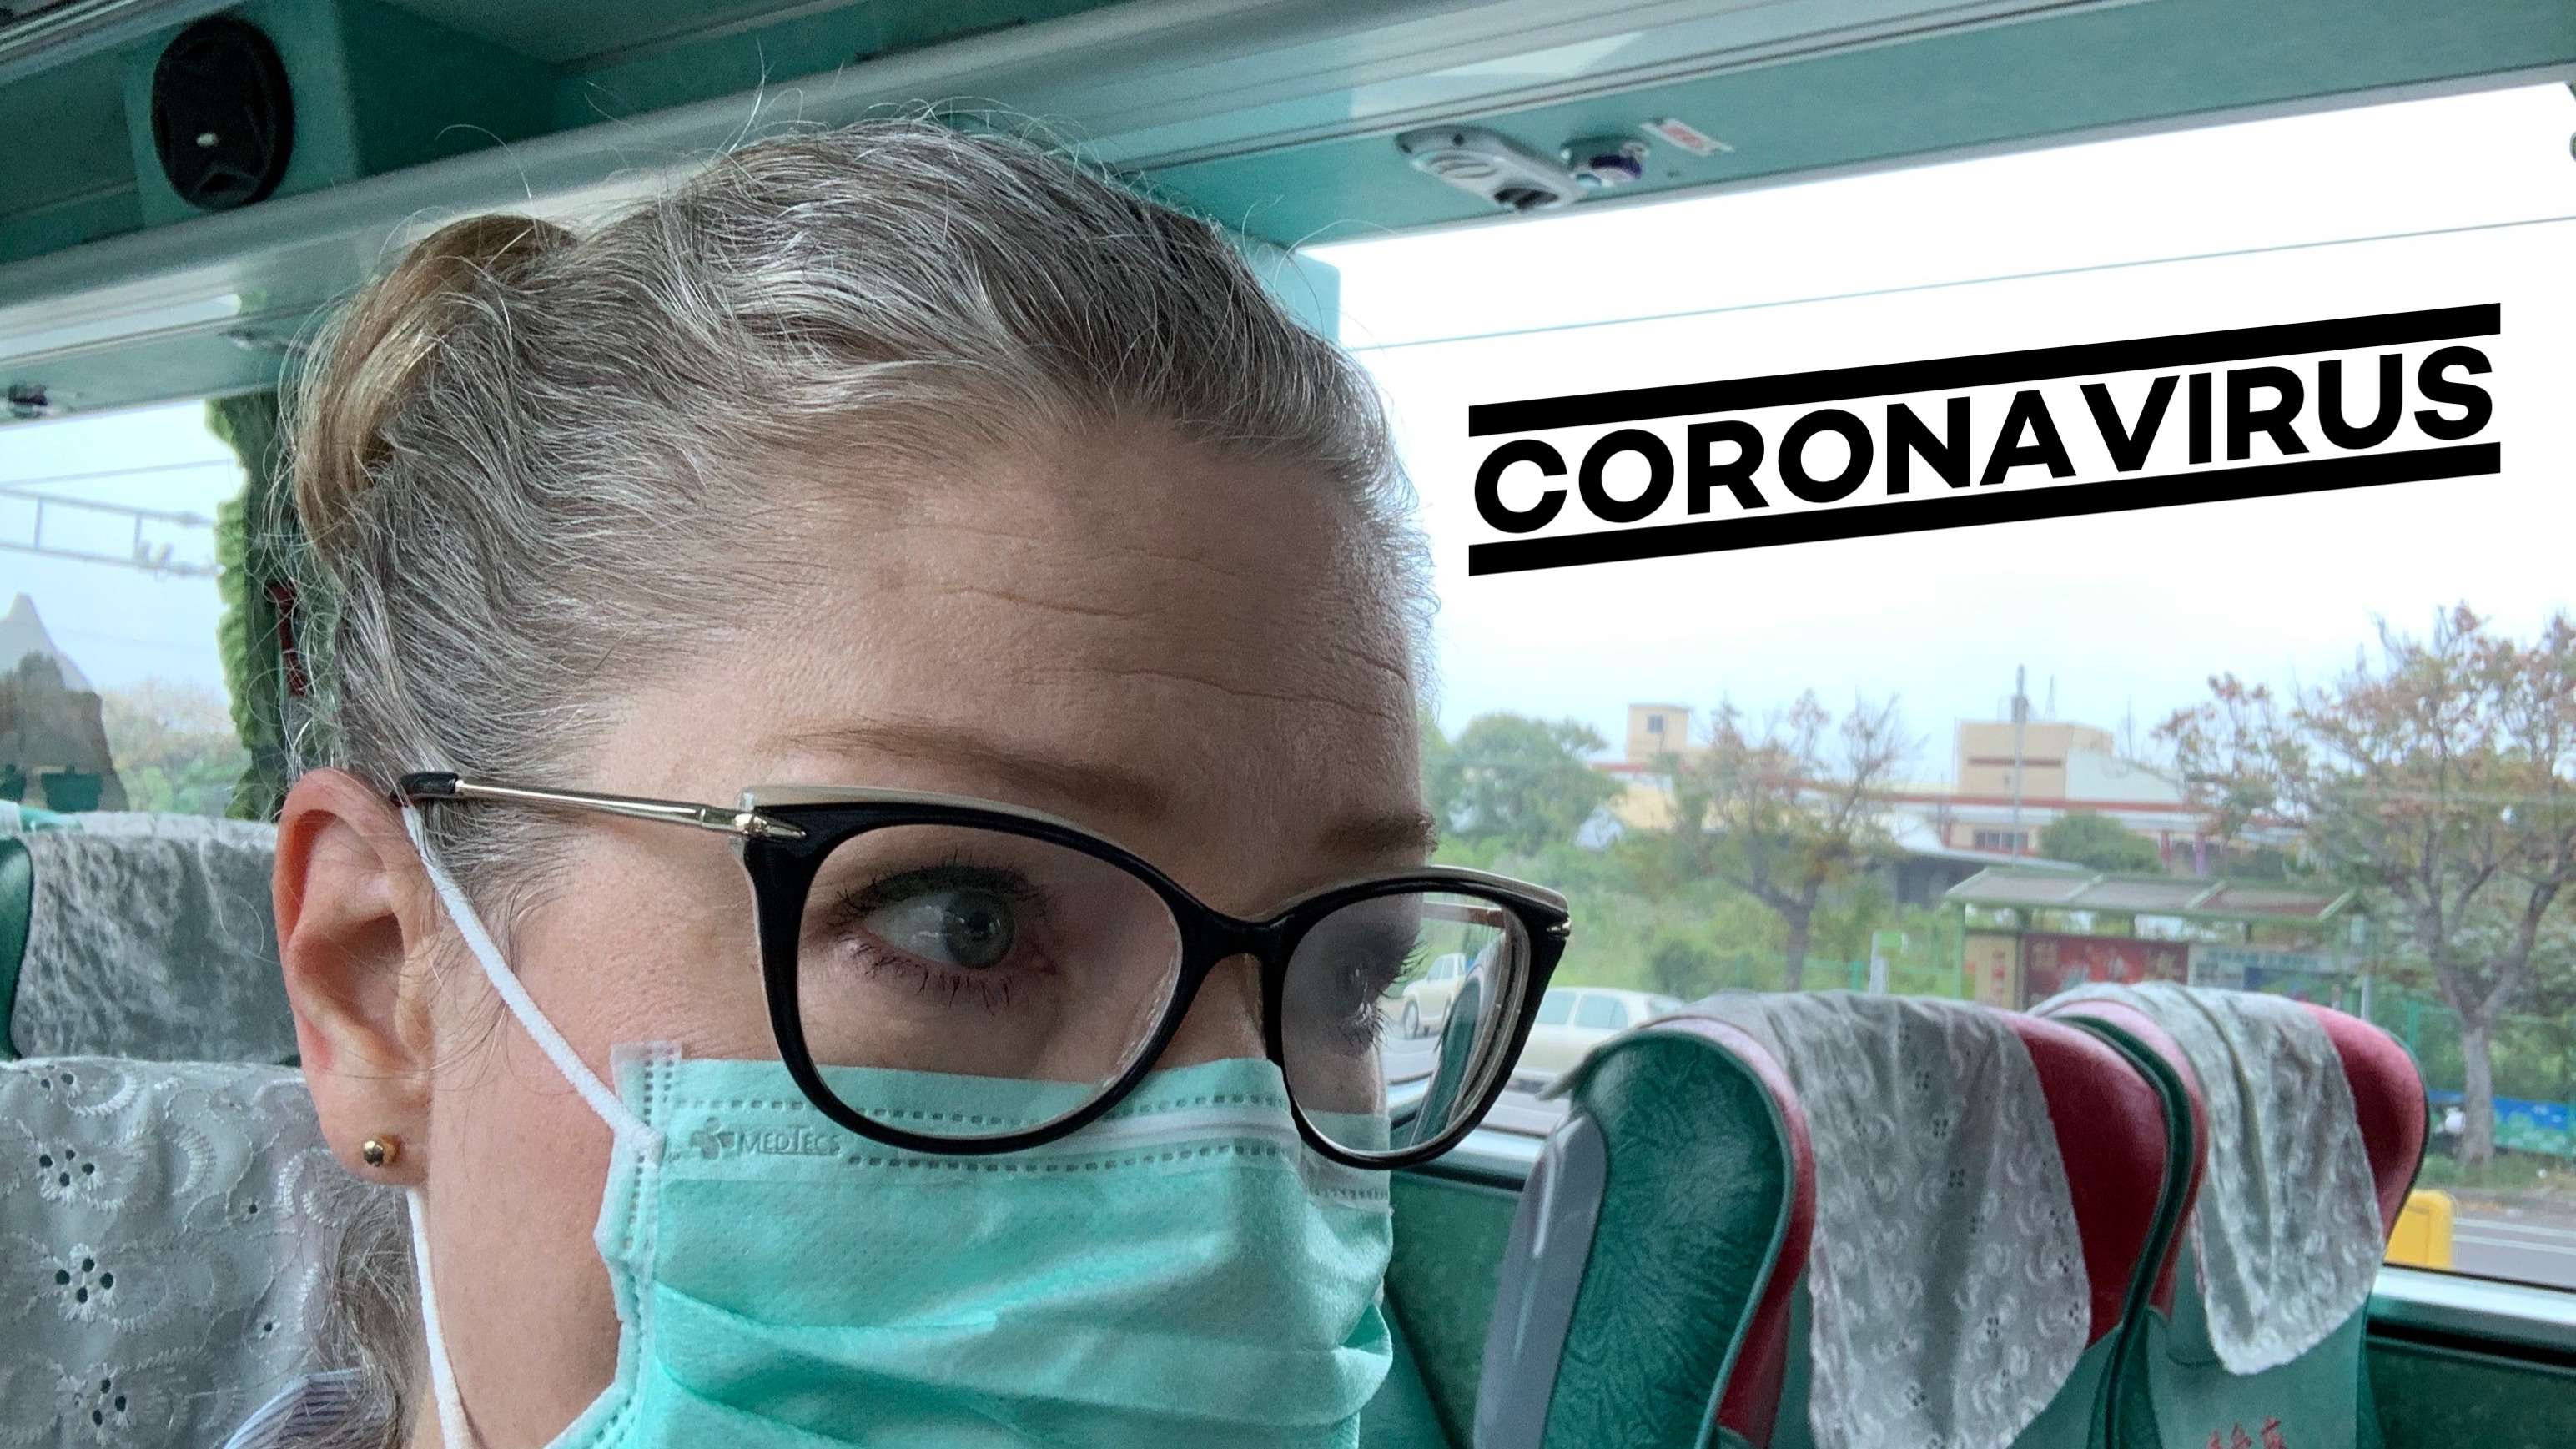 Public outings require medical masks during coronavirus concerns